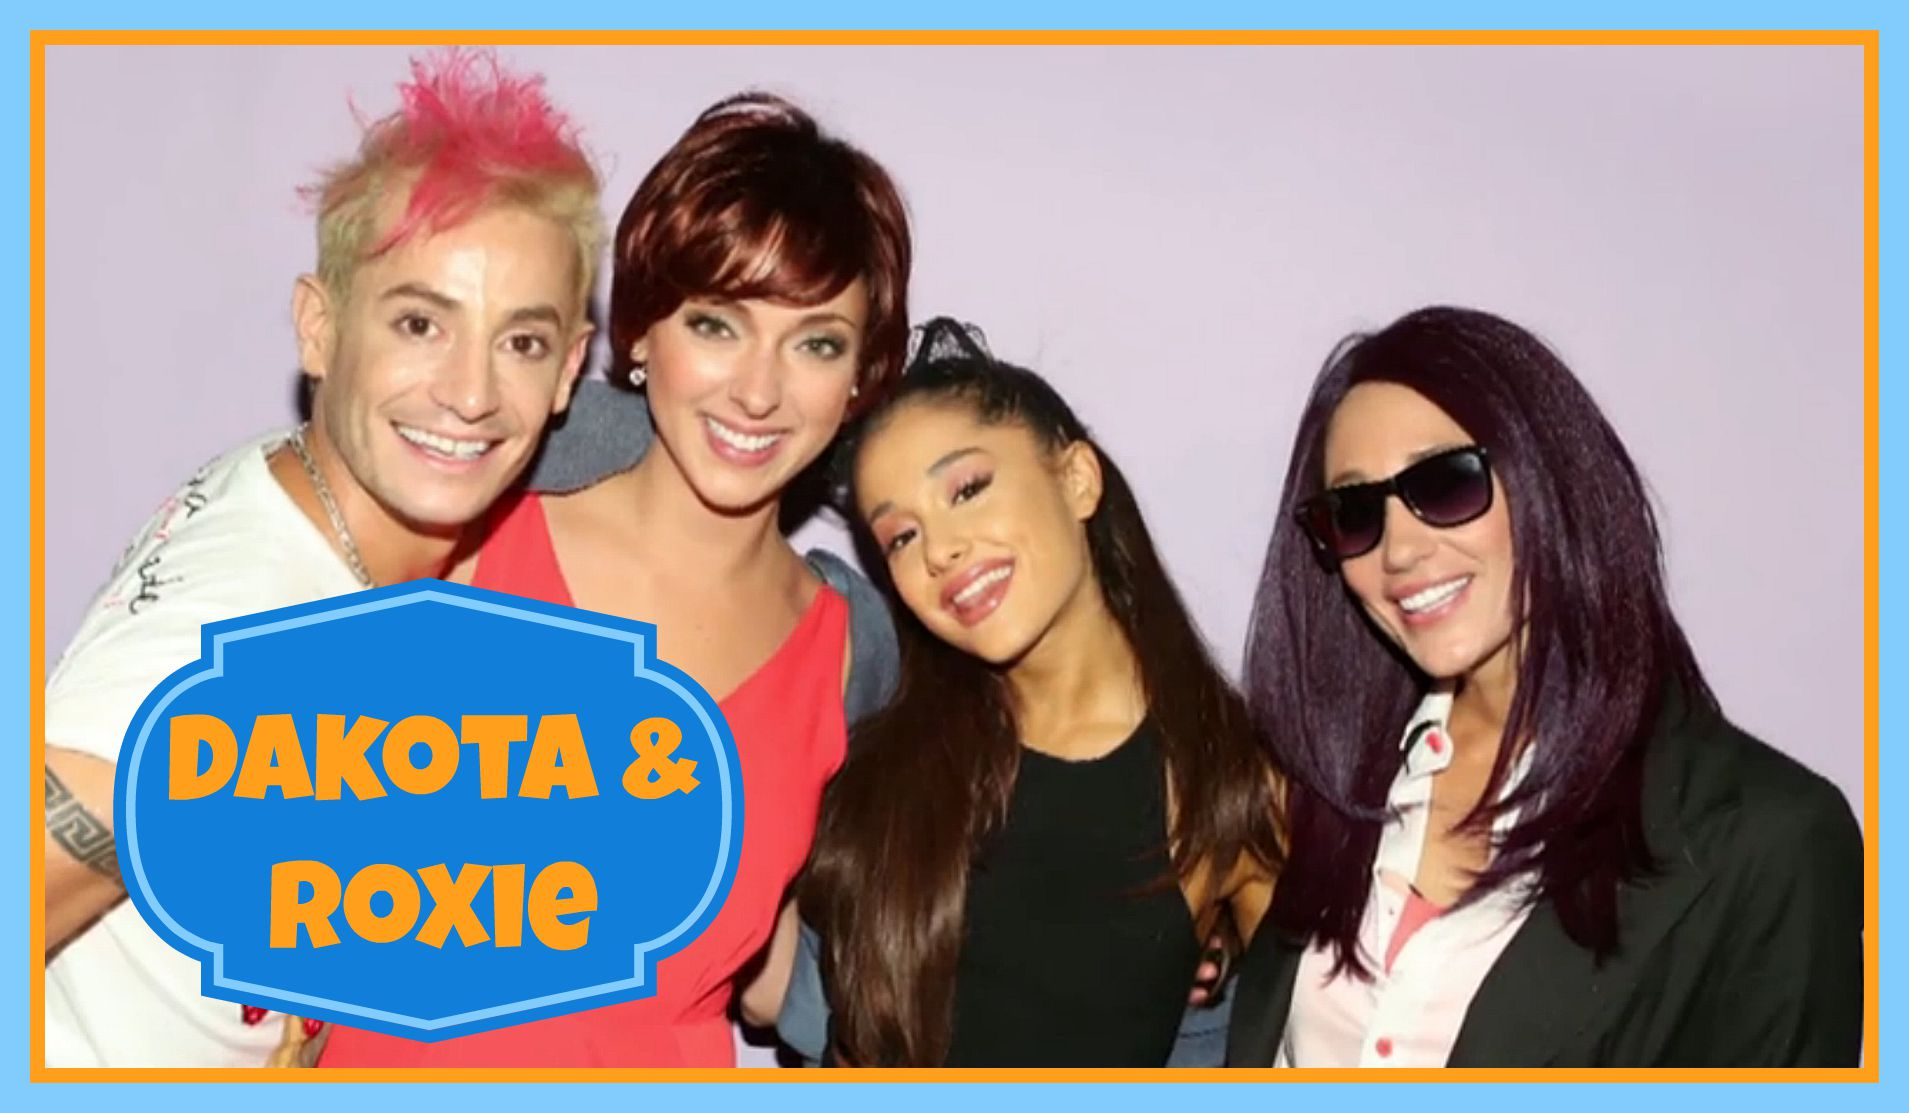 Question: What were Vanessa and Liz's Ariana Grande alter-ego names?